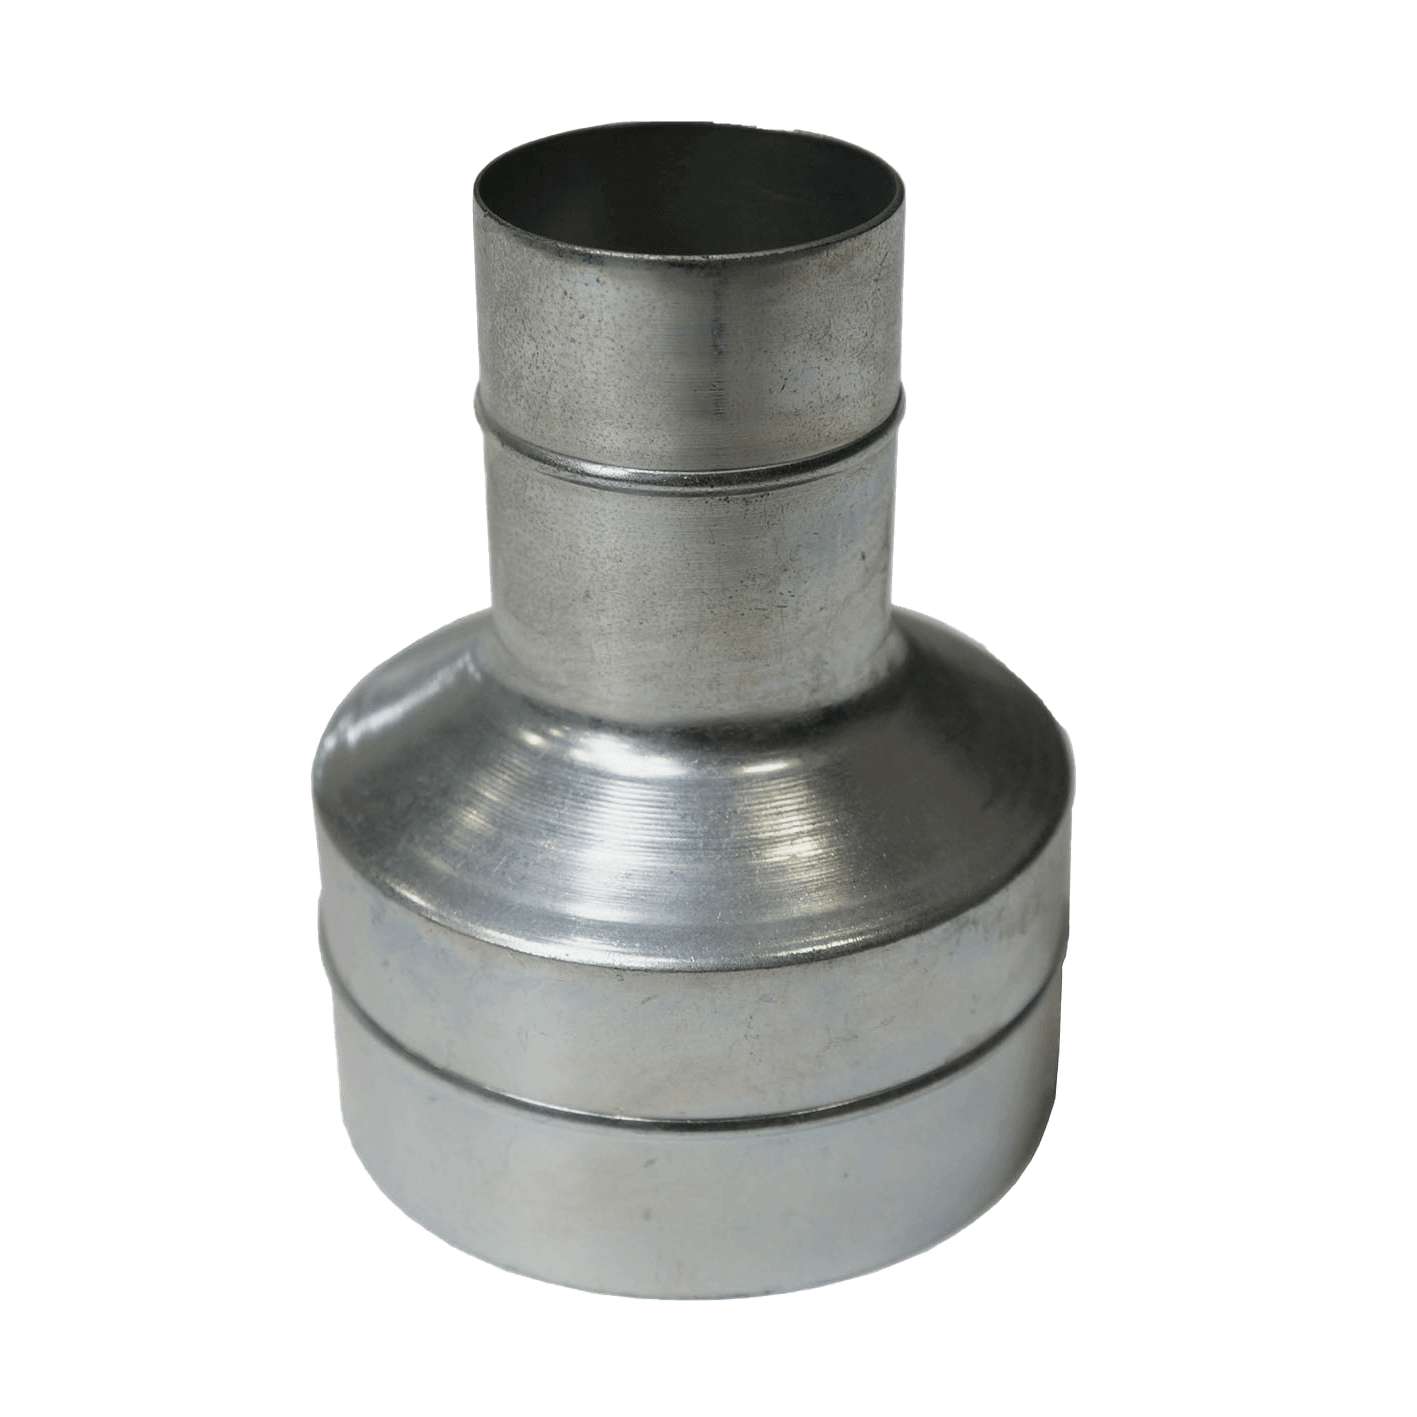 70mm Suction Reducer for MAXVAC Supra Vacuum